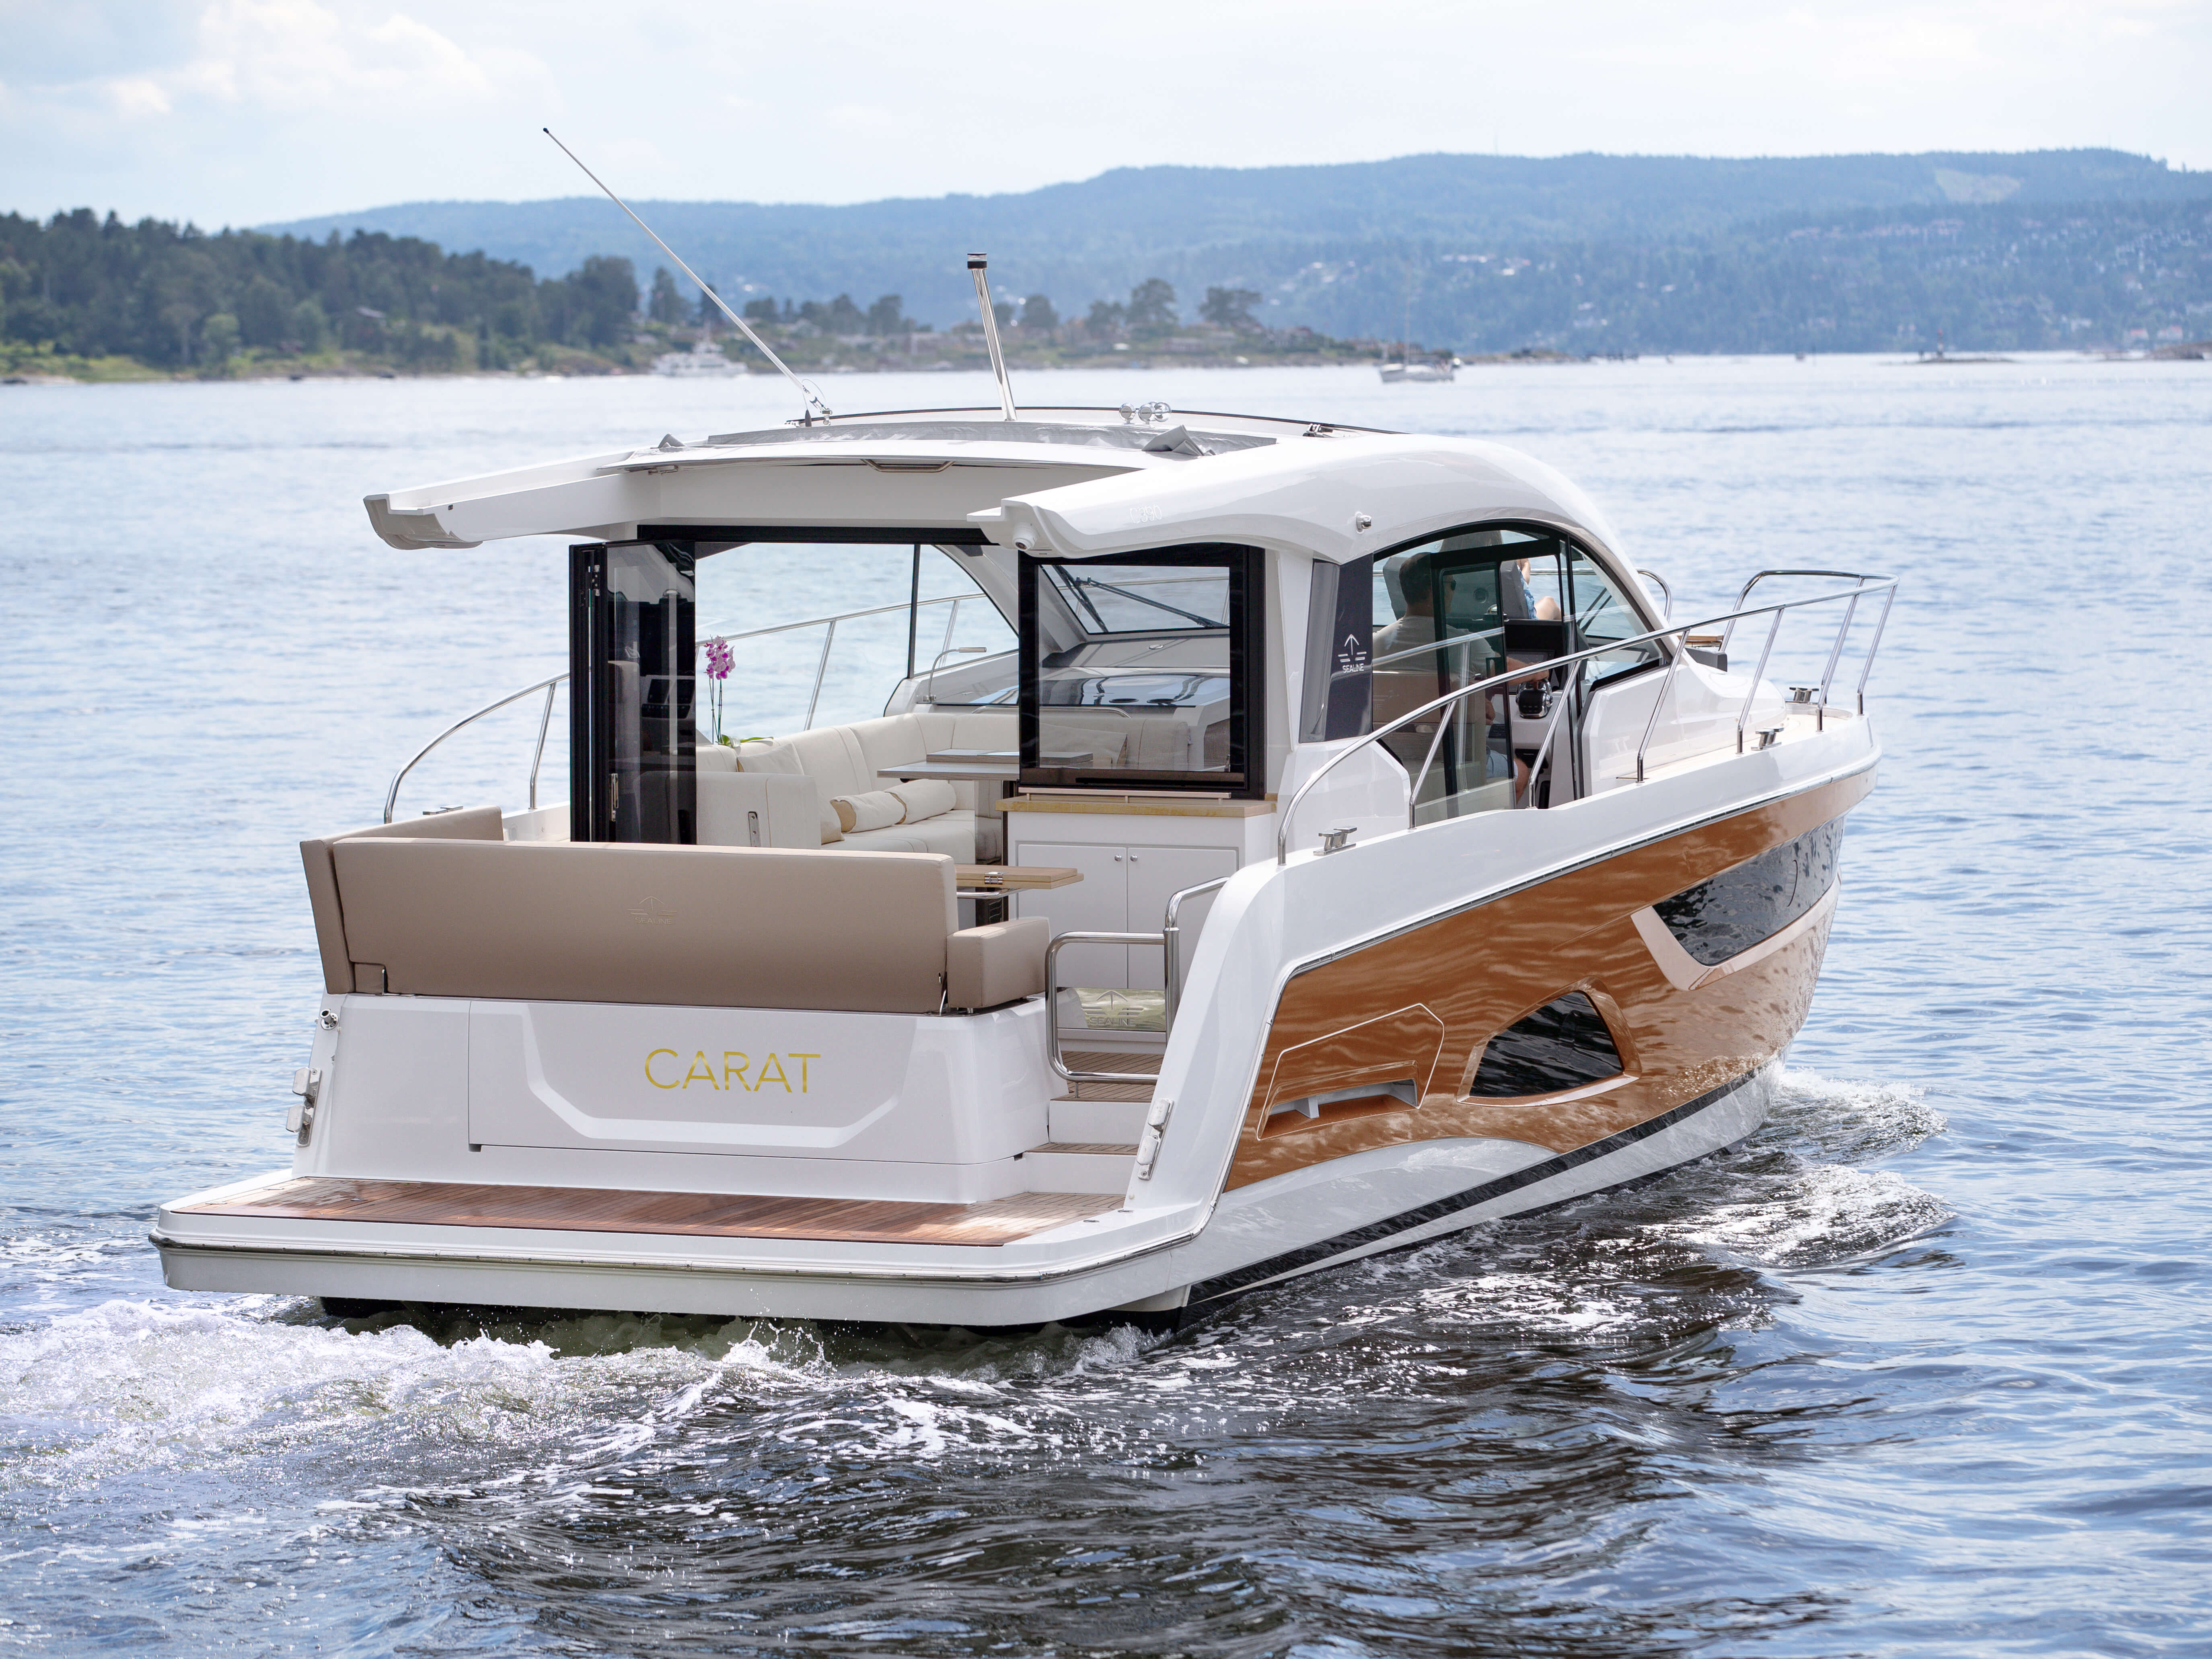 Sealine C390 exterior | More panorama, more sunlight, more freedom - with the Sealine C390, these aspirations take on a striking form. | Sealine